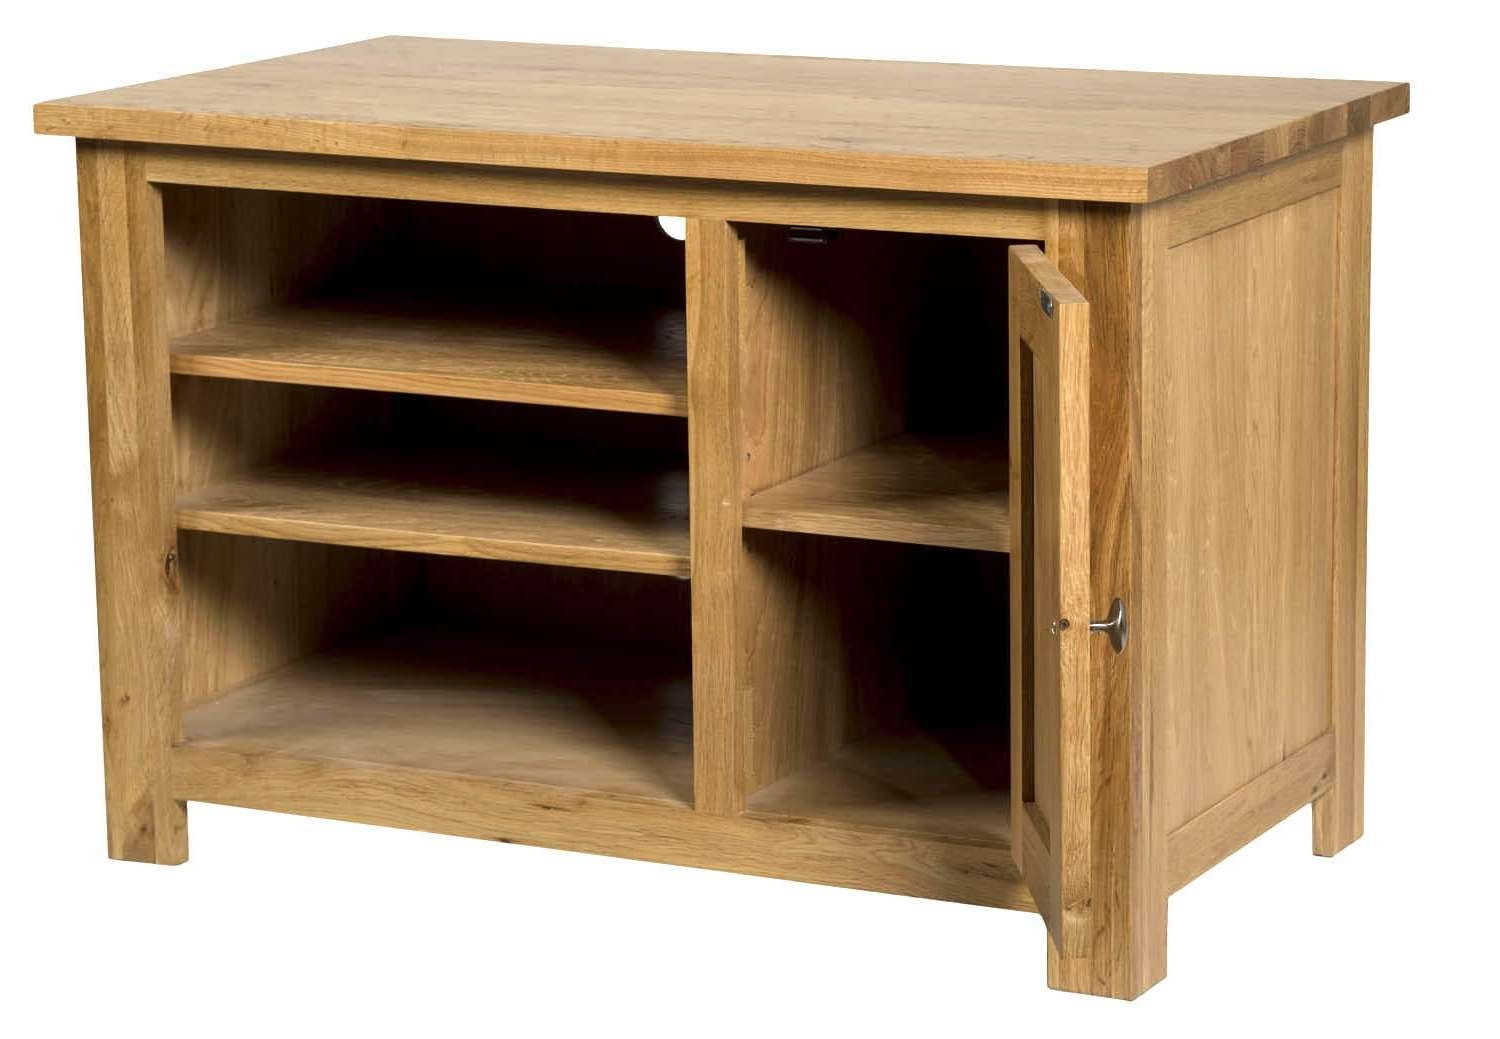 Waverly Oak Small Compact Tv Stand With Cabinet Storage | Hallowood Throughout Small Tv Cabinets (View 13 of 20)